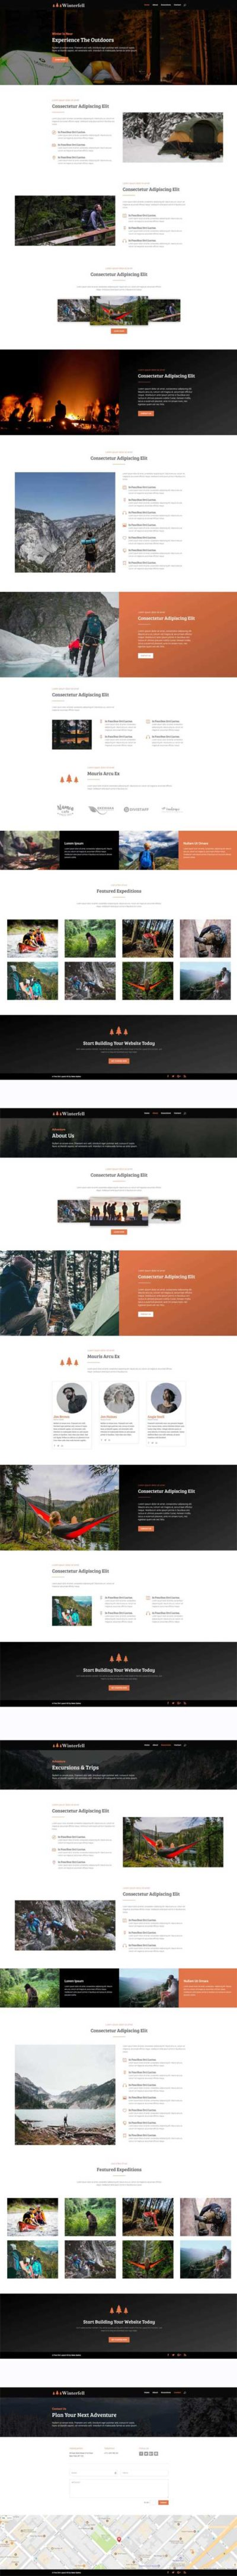 Winterfell Divi layout pack free download